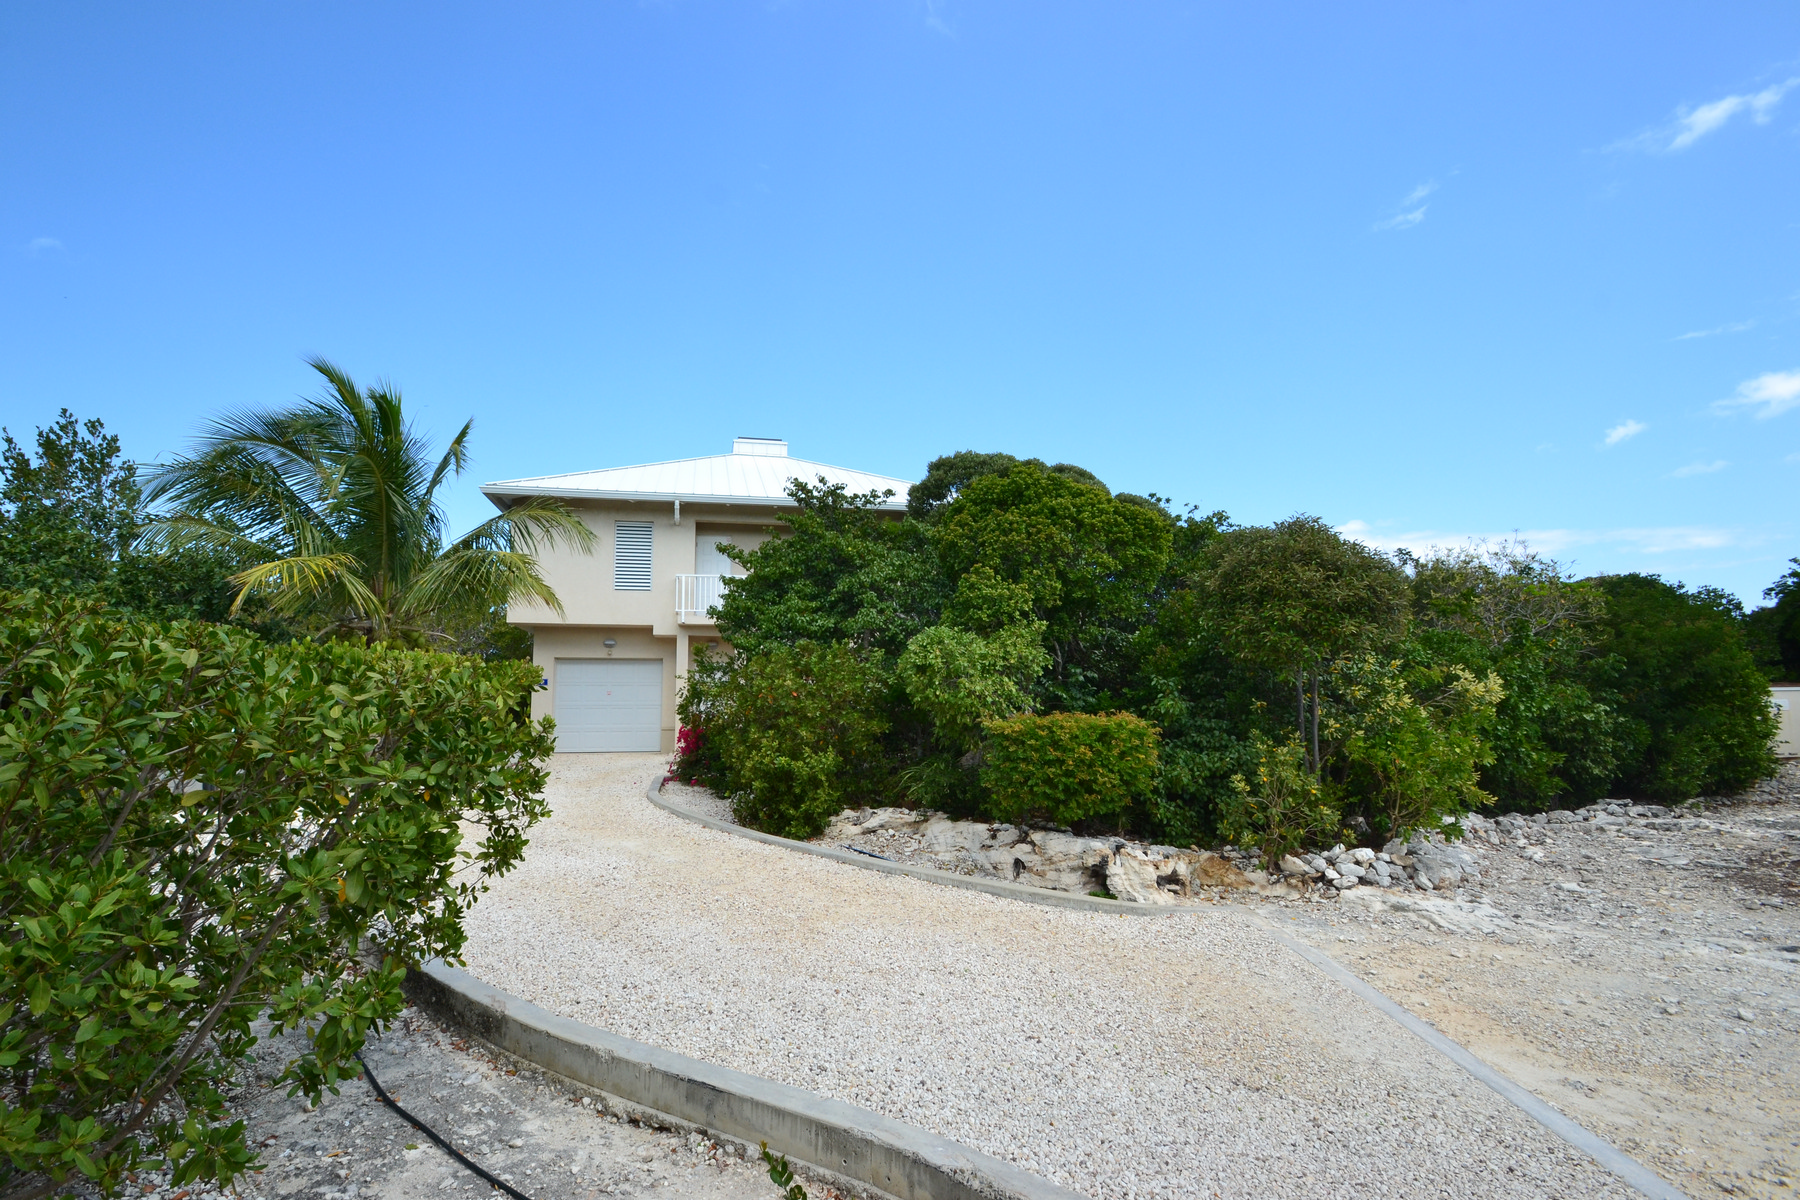 Additional photo for property listing at 2 EGRET CLOSE Canalfront Thompson Cove, Providenciales TKCA 1ZZ Turks And Caicos Islands